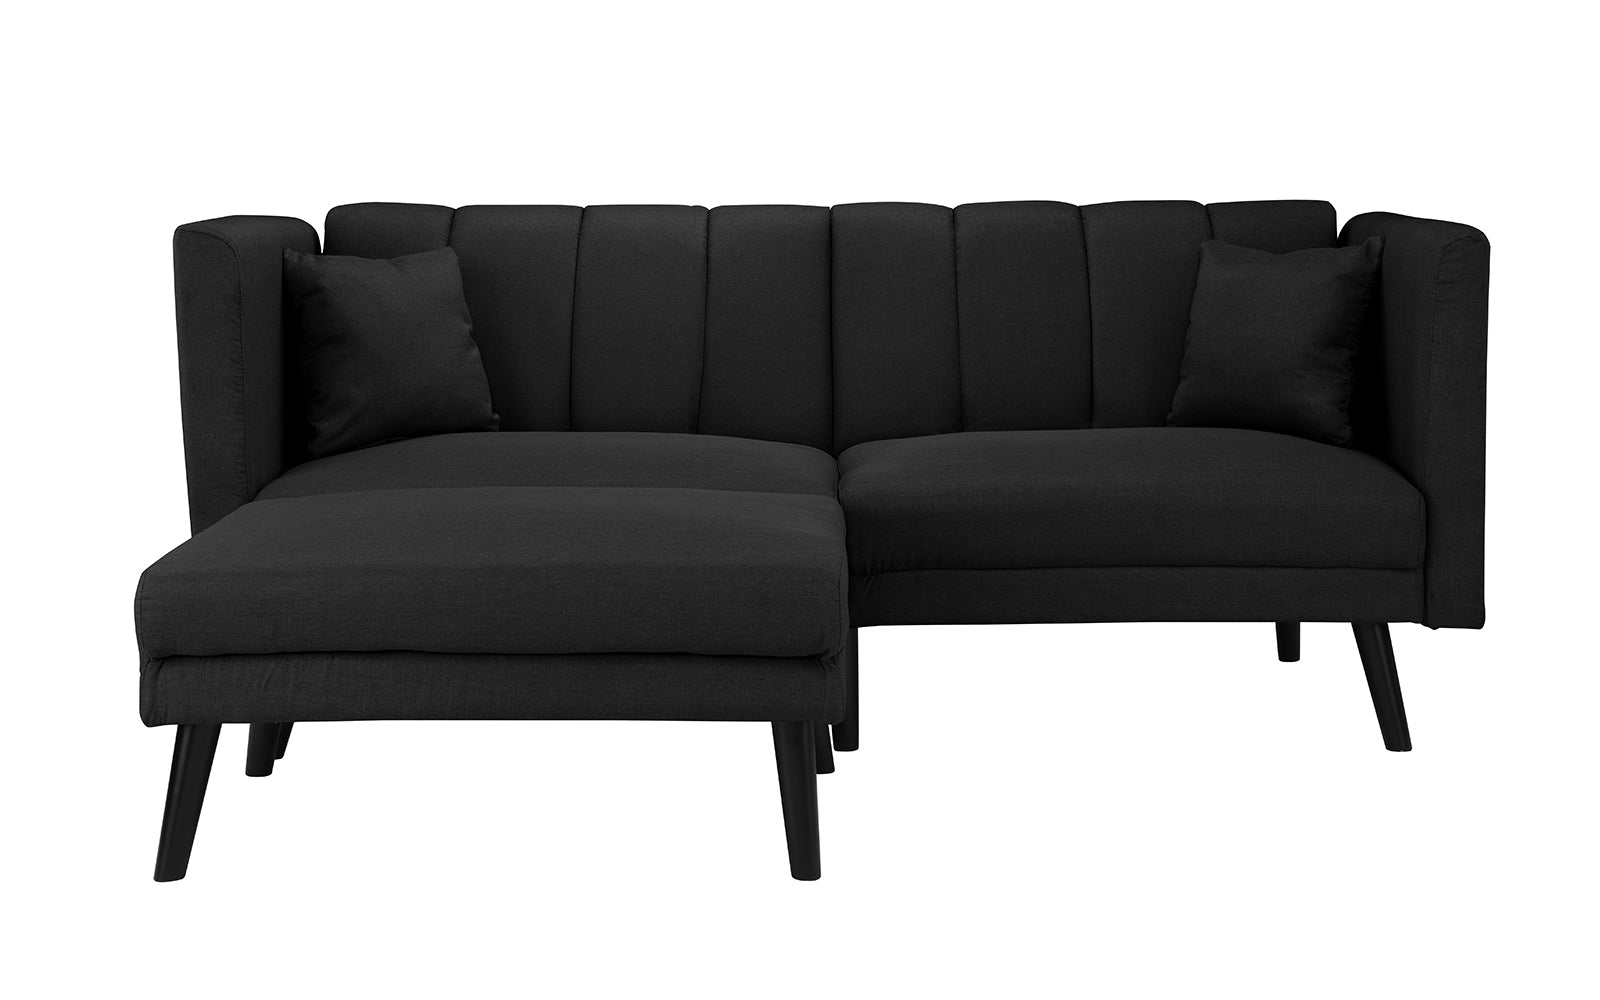 Awesome Buy Affordable Futons Online 20 Modern Styles For Sale Cjindustries Chair Design For Home Cjindustriesco